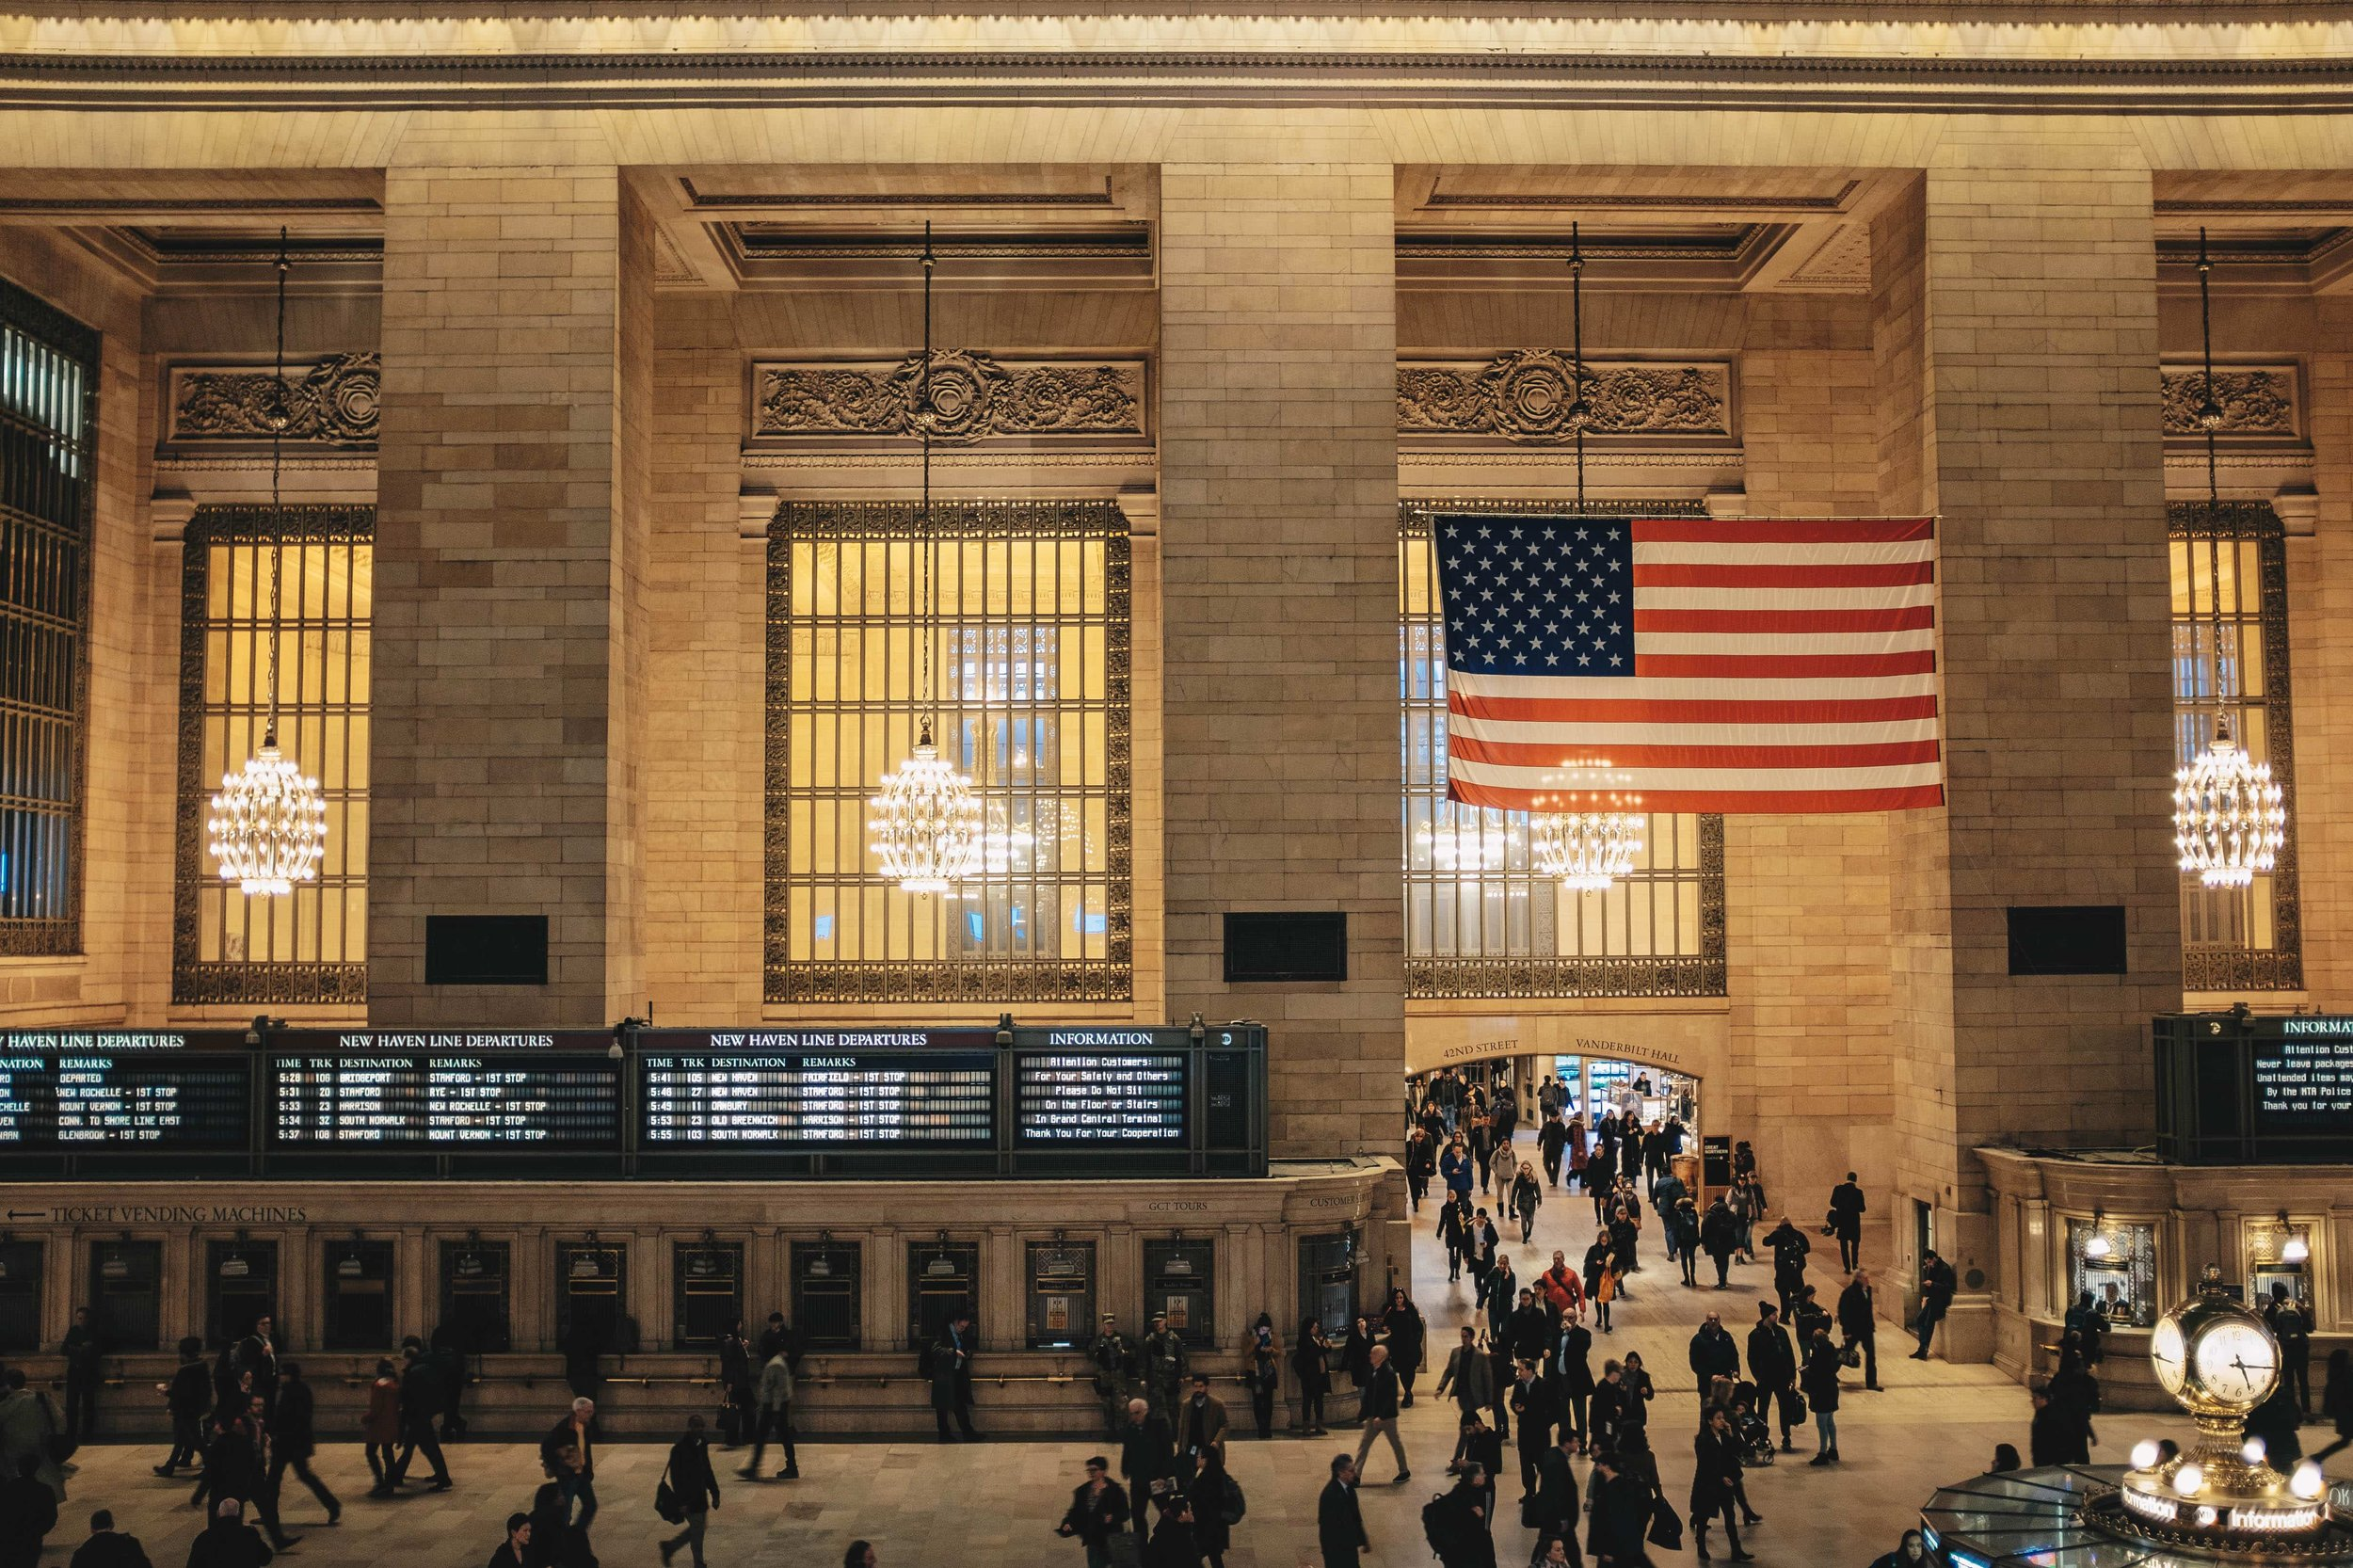 nyc-grand-central-station-guide-travel.jpg